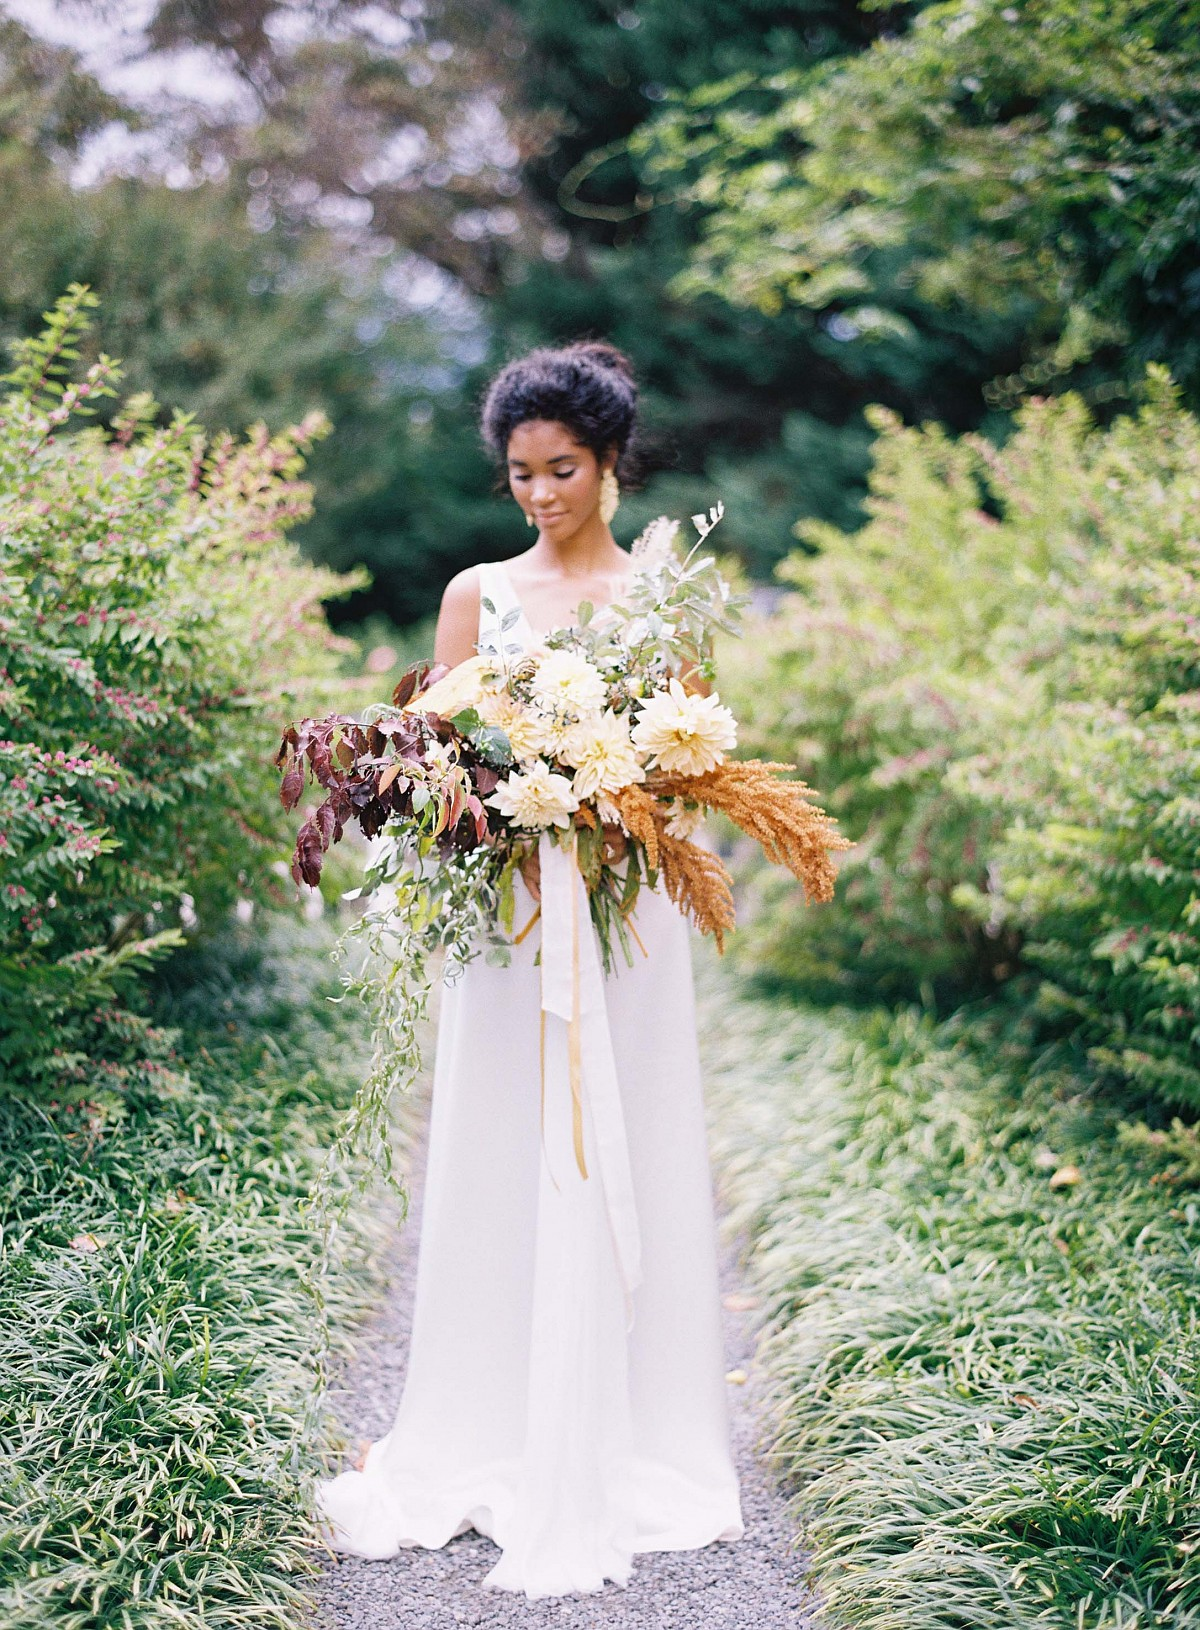 Autumnal Wedding Inspired by Natural Beauty